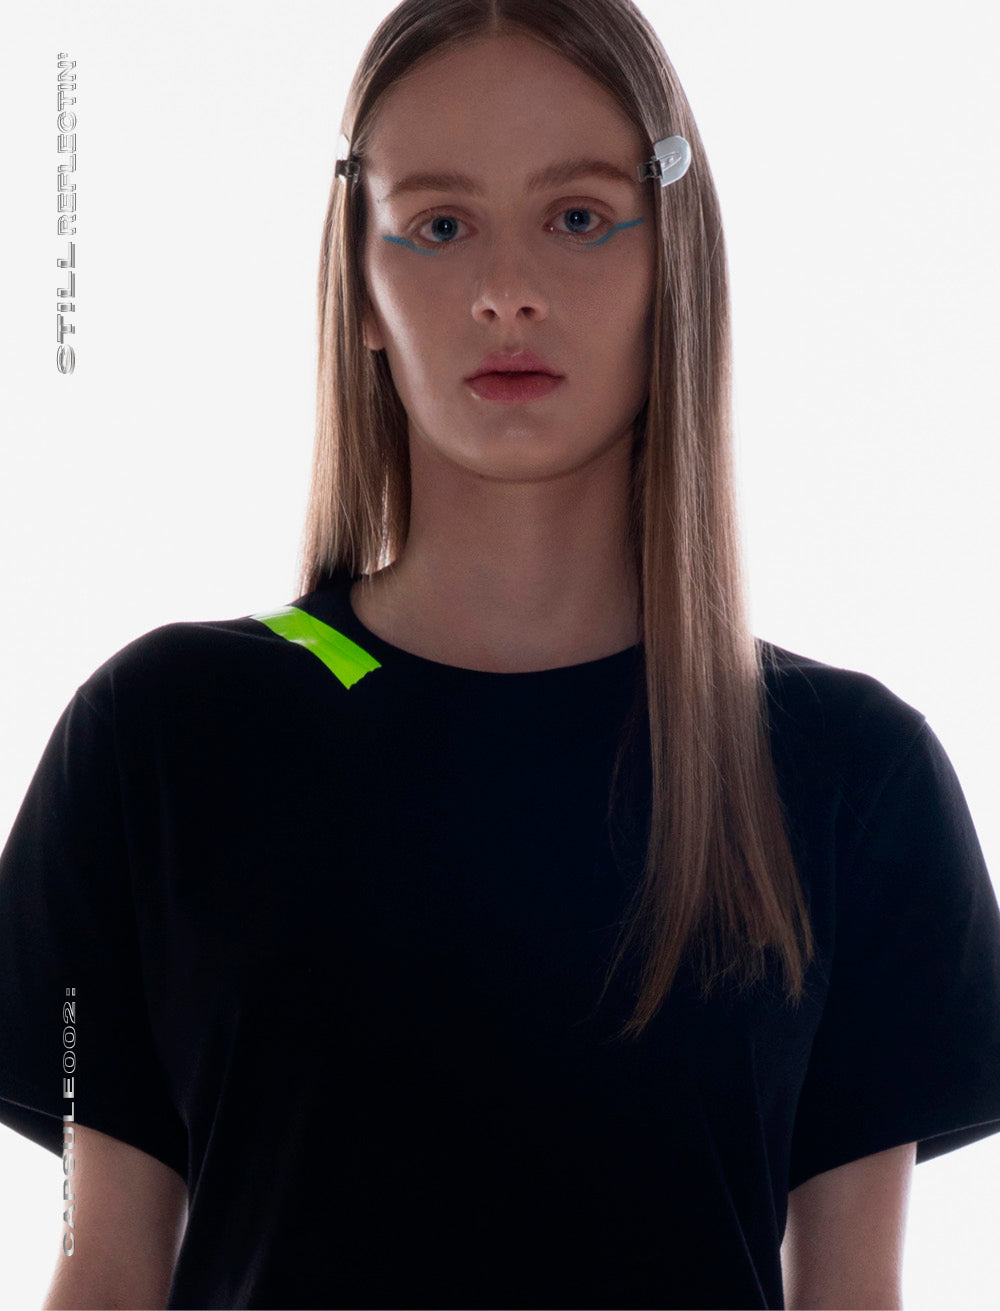 T_SHIRT [BLACK]  //  NEON GREEN TAPE